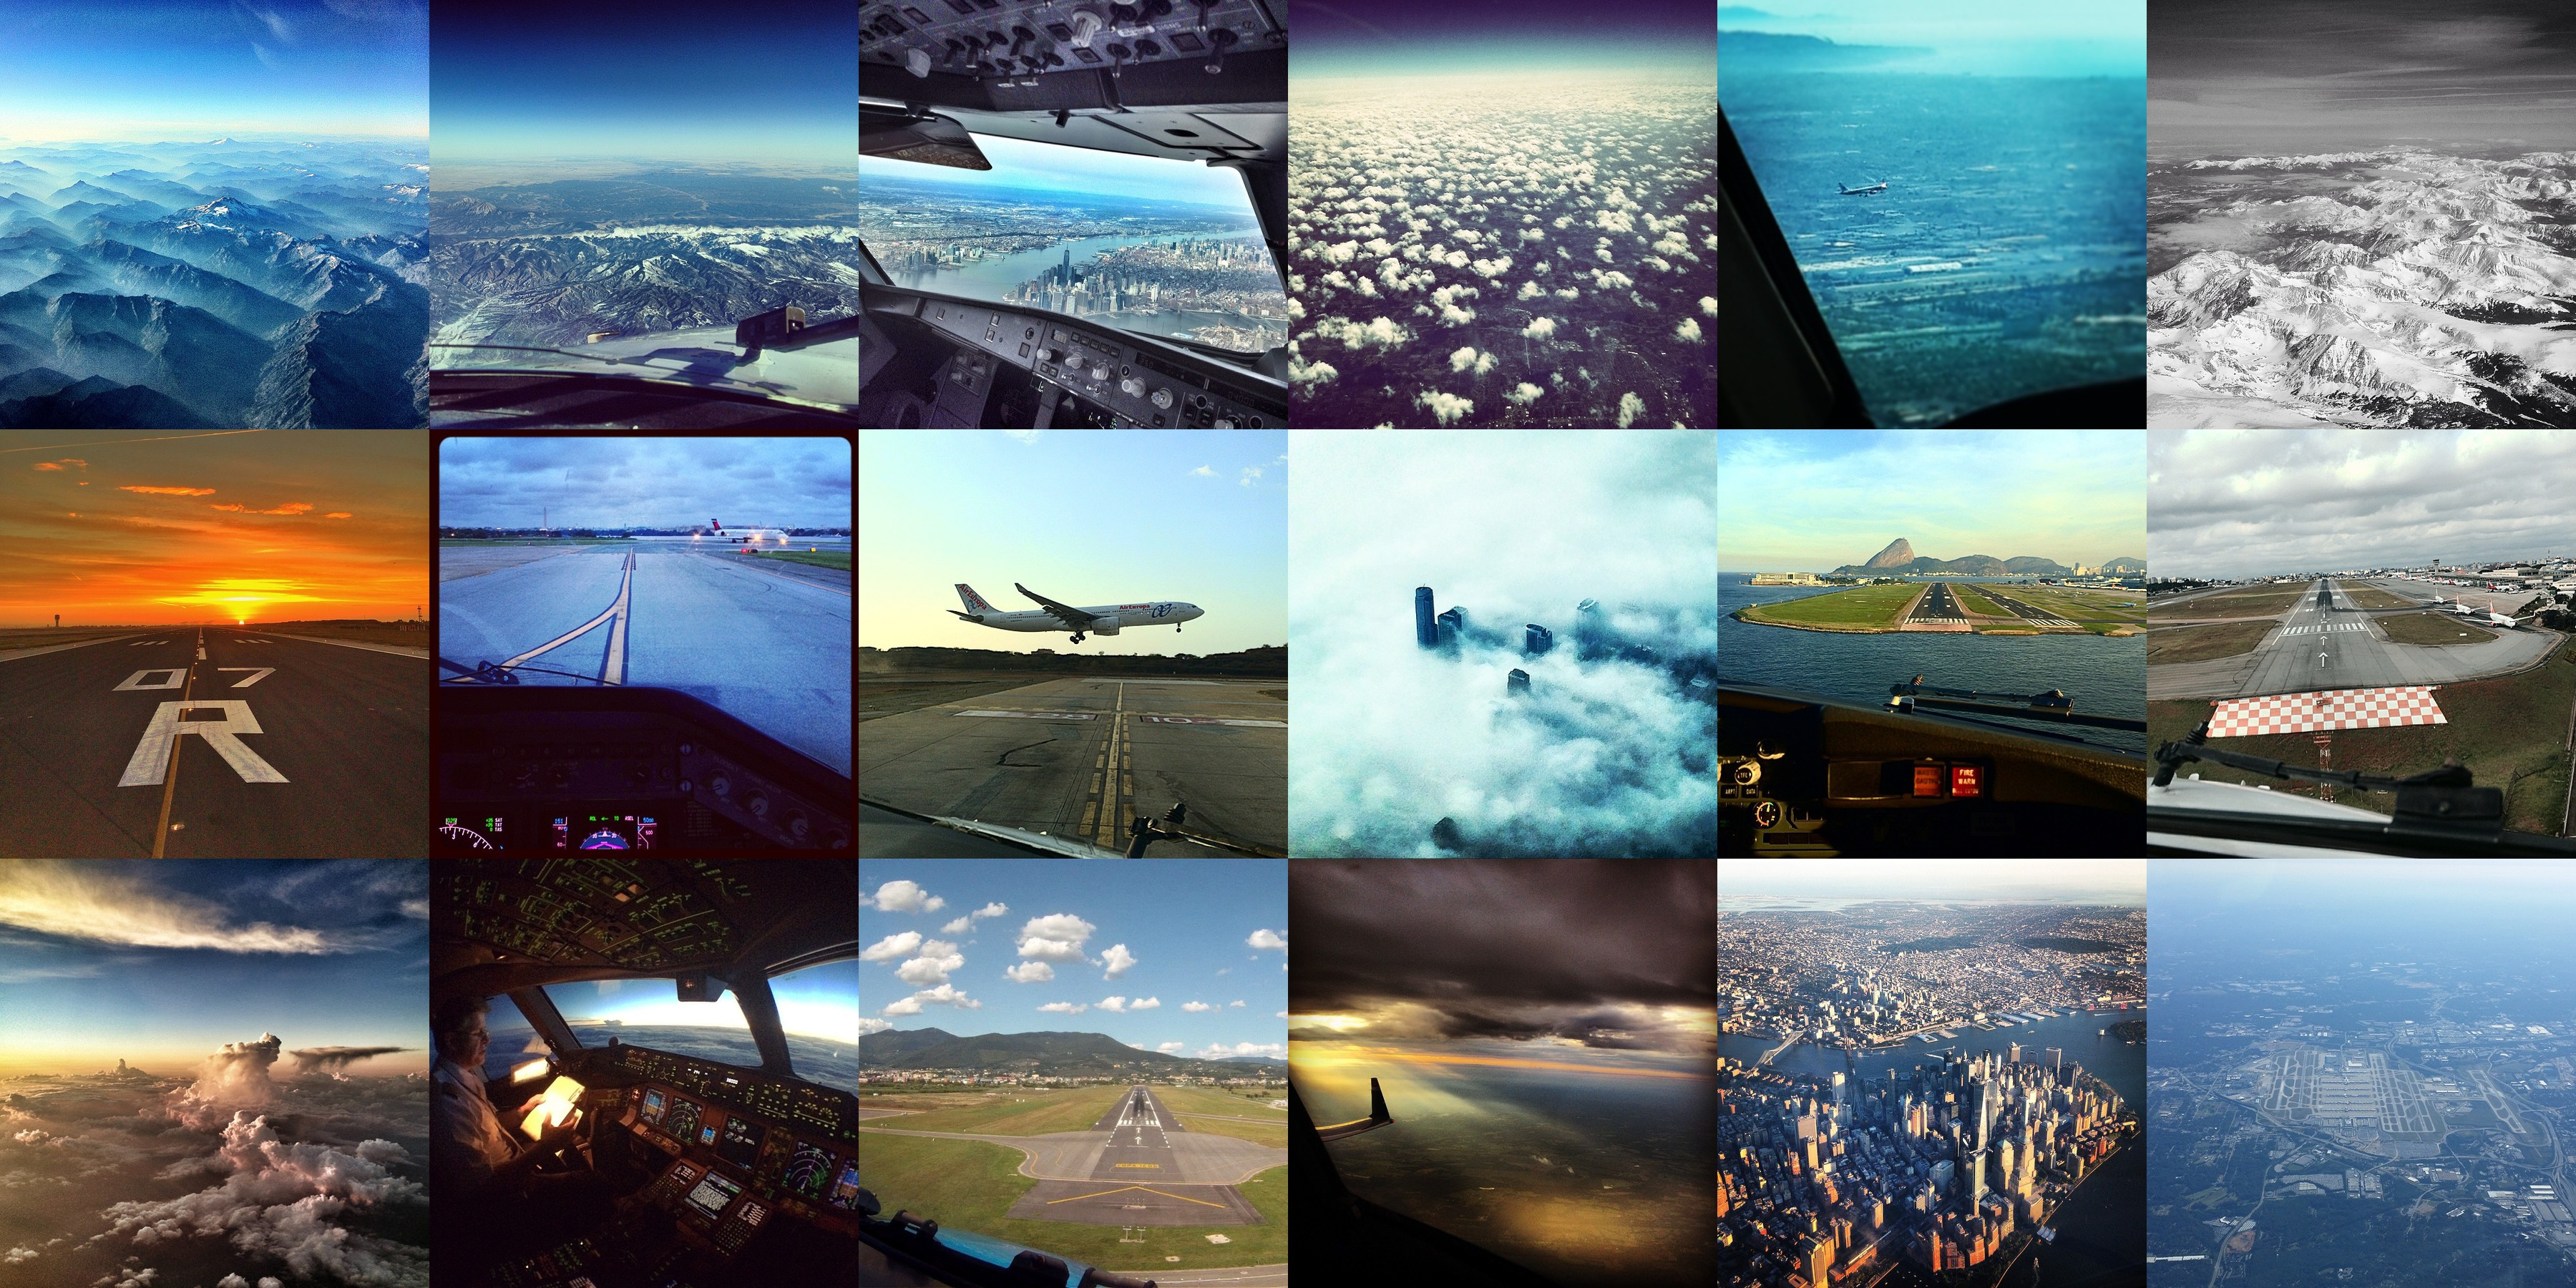 The pilots of Instagram: beautiful views from the cockpit